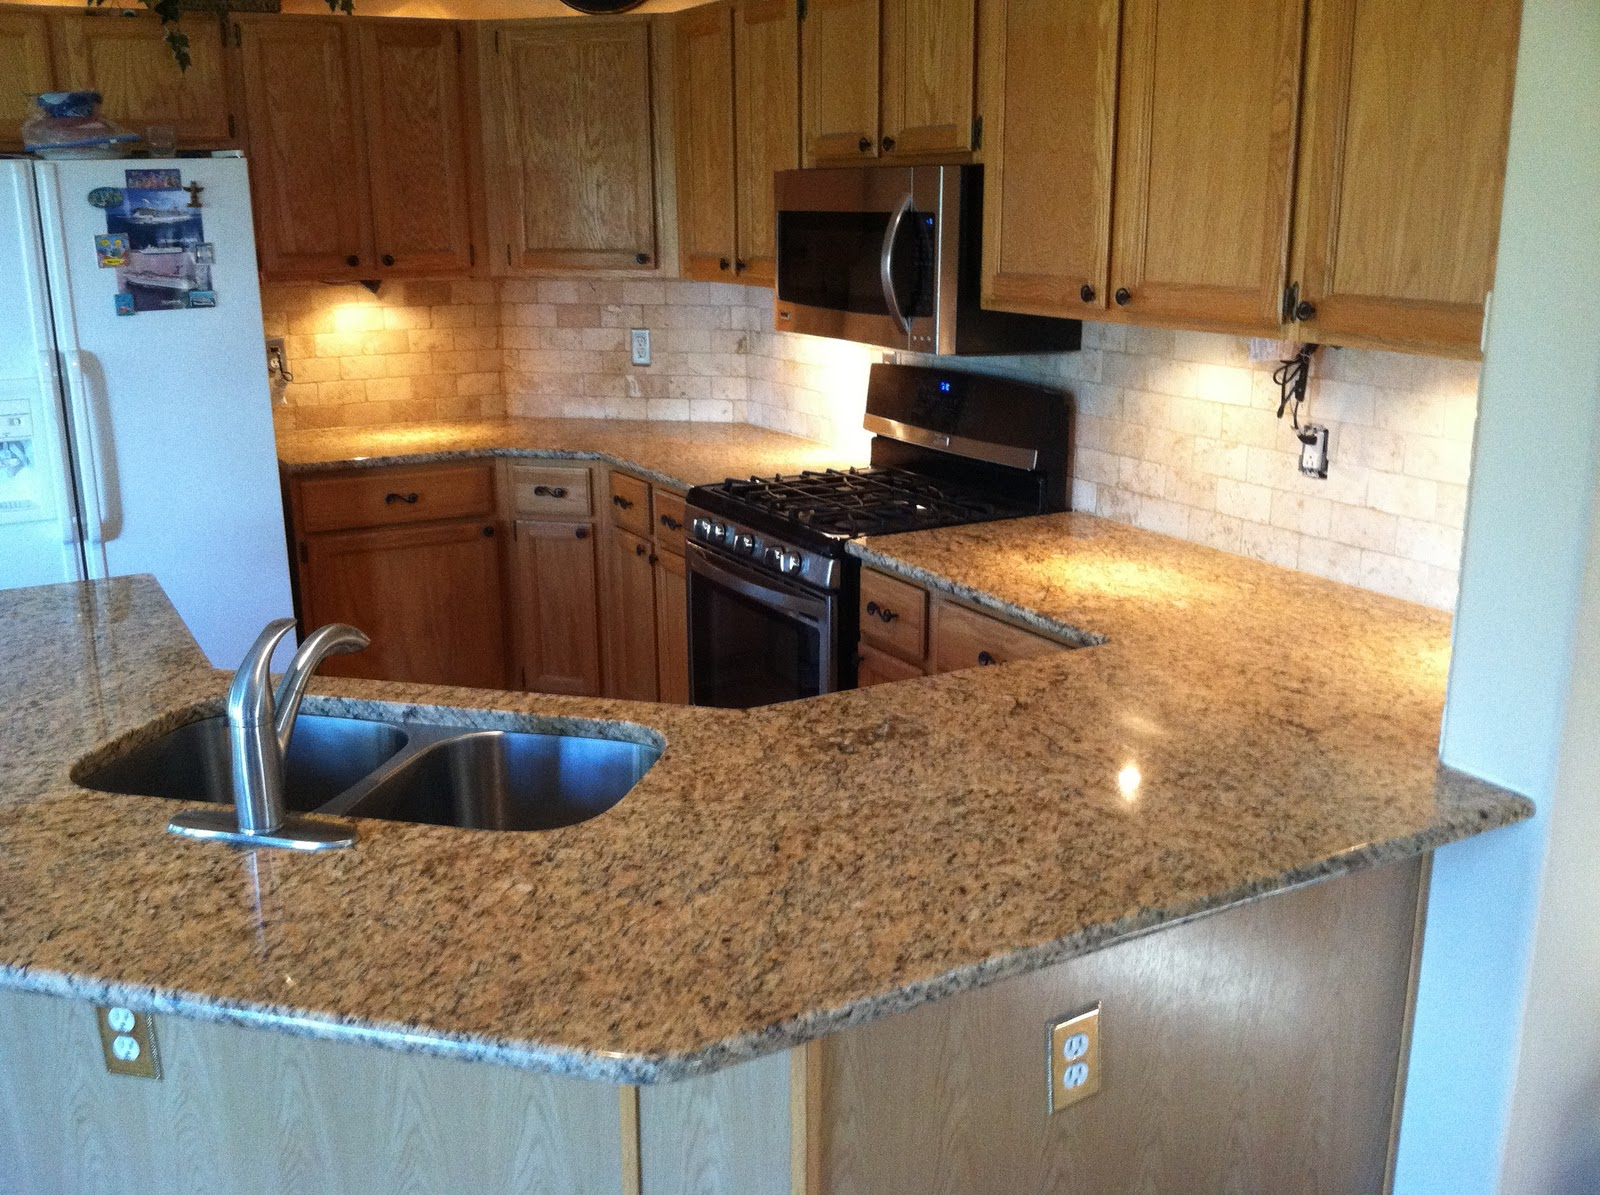 ... Kitchen We Completed In New Venetian Gold, And For All Countertop And  Backsplash Materials And Labor This Kitchen Cost $4,300.